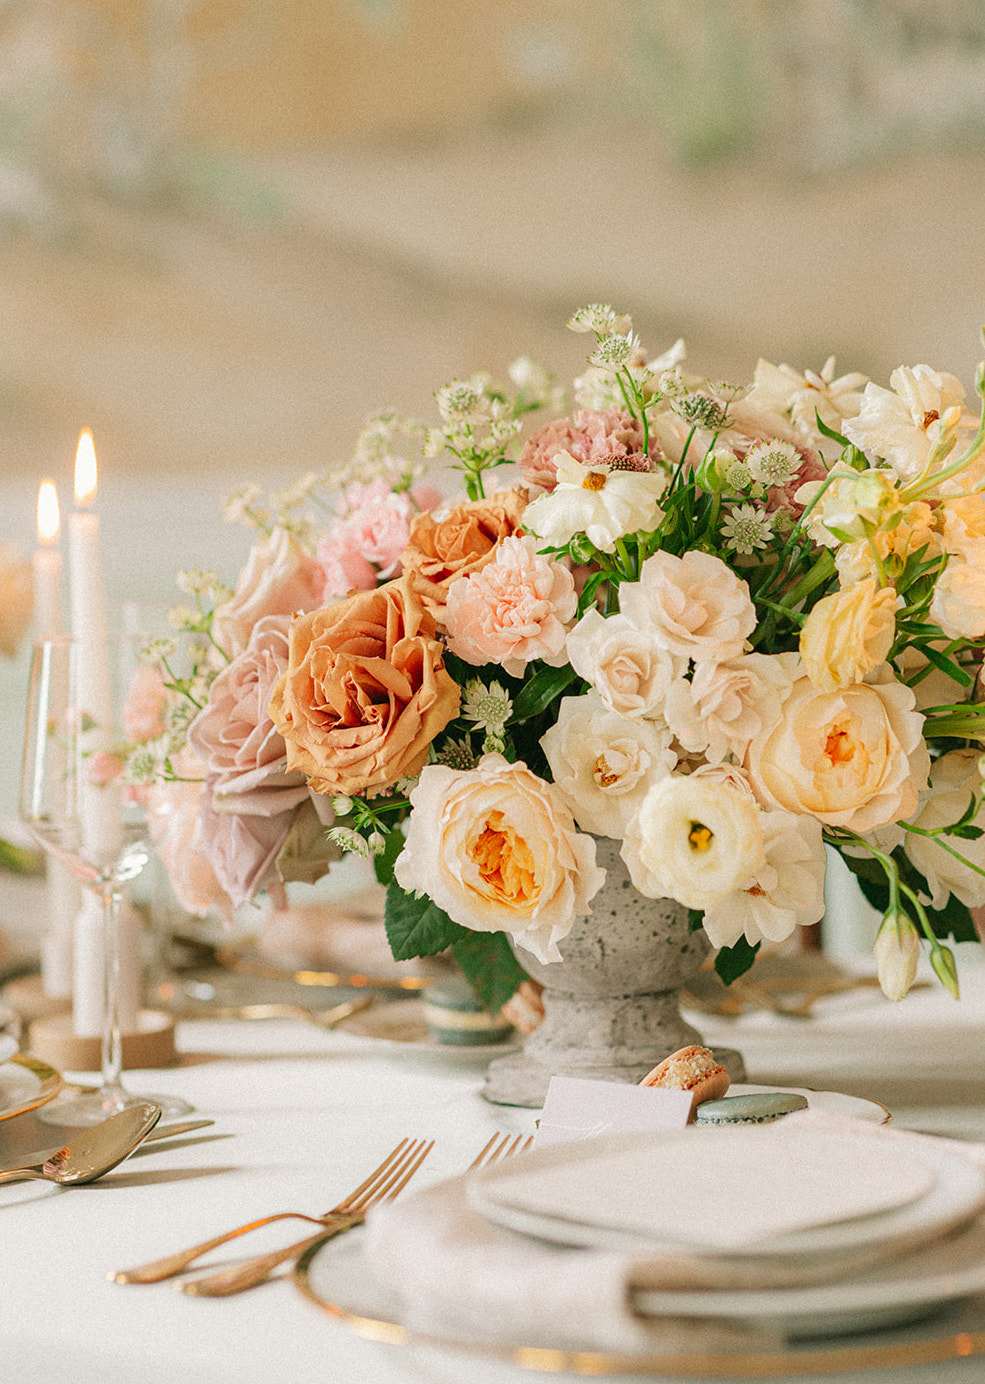 Artfully curated flower arrangements with garden roses and hill country wildflowers in buttercream, copper and peach hues.